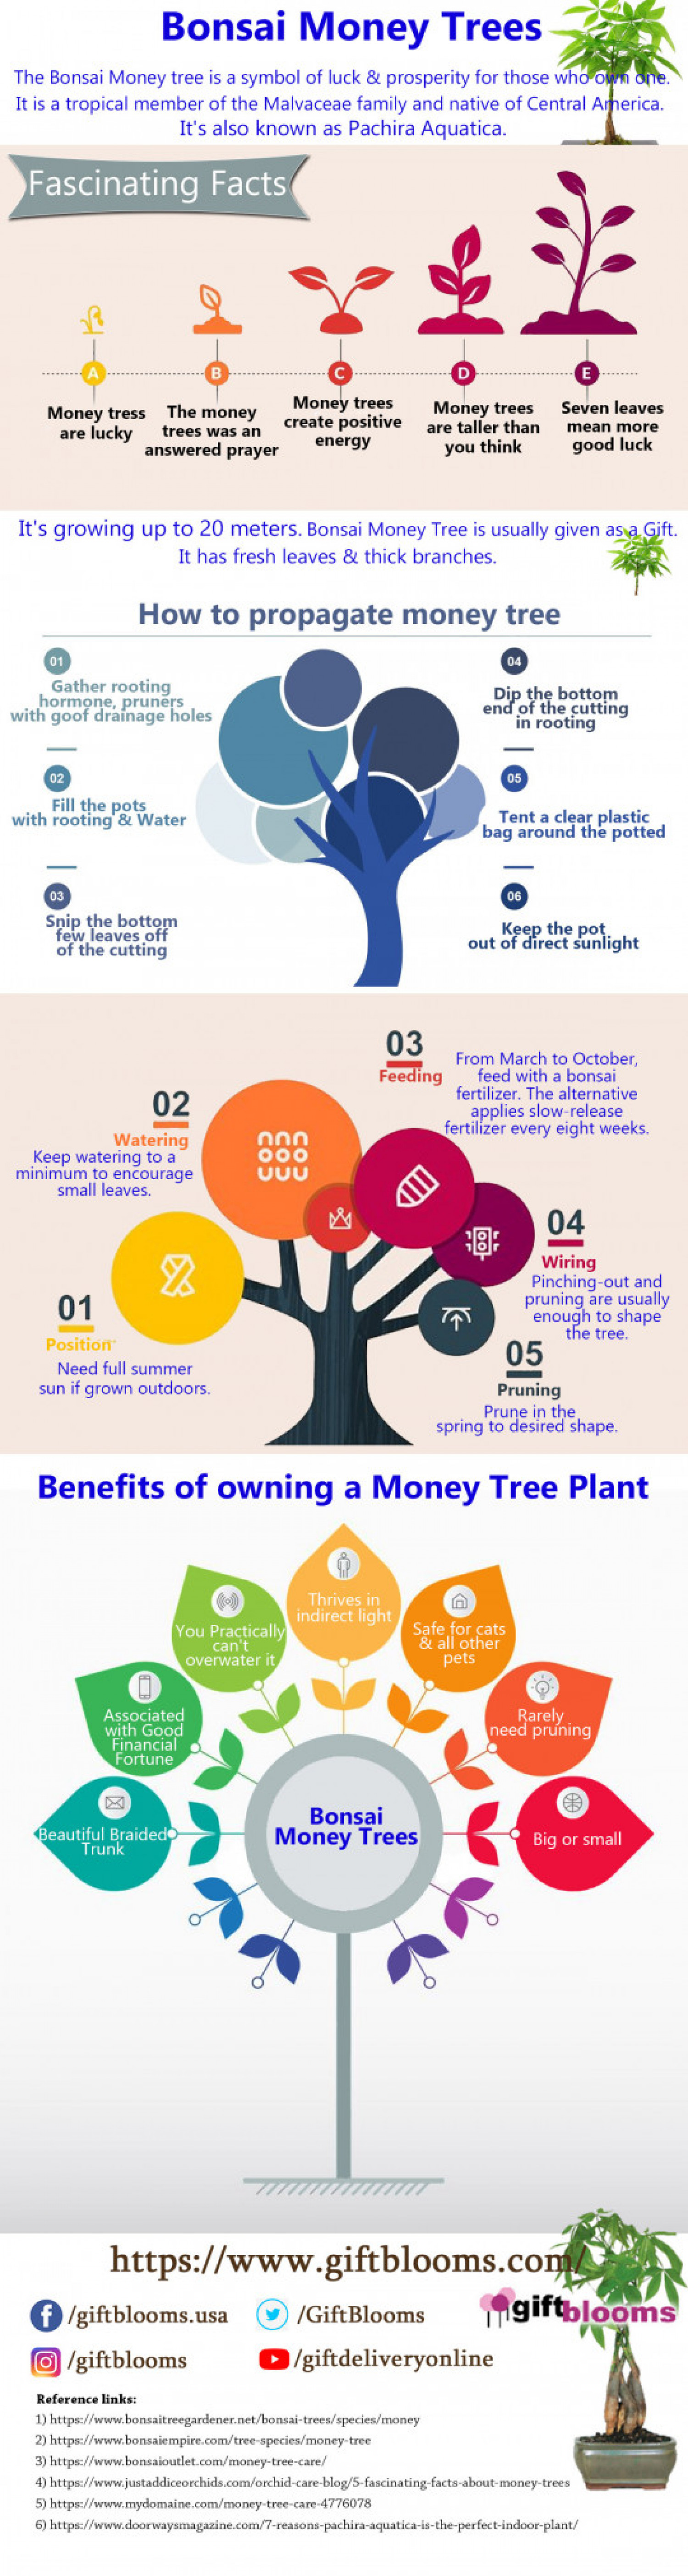 Bonsai Money Trees Infographic